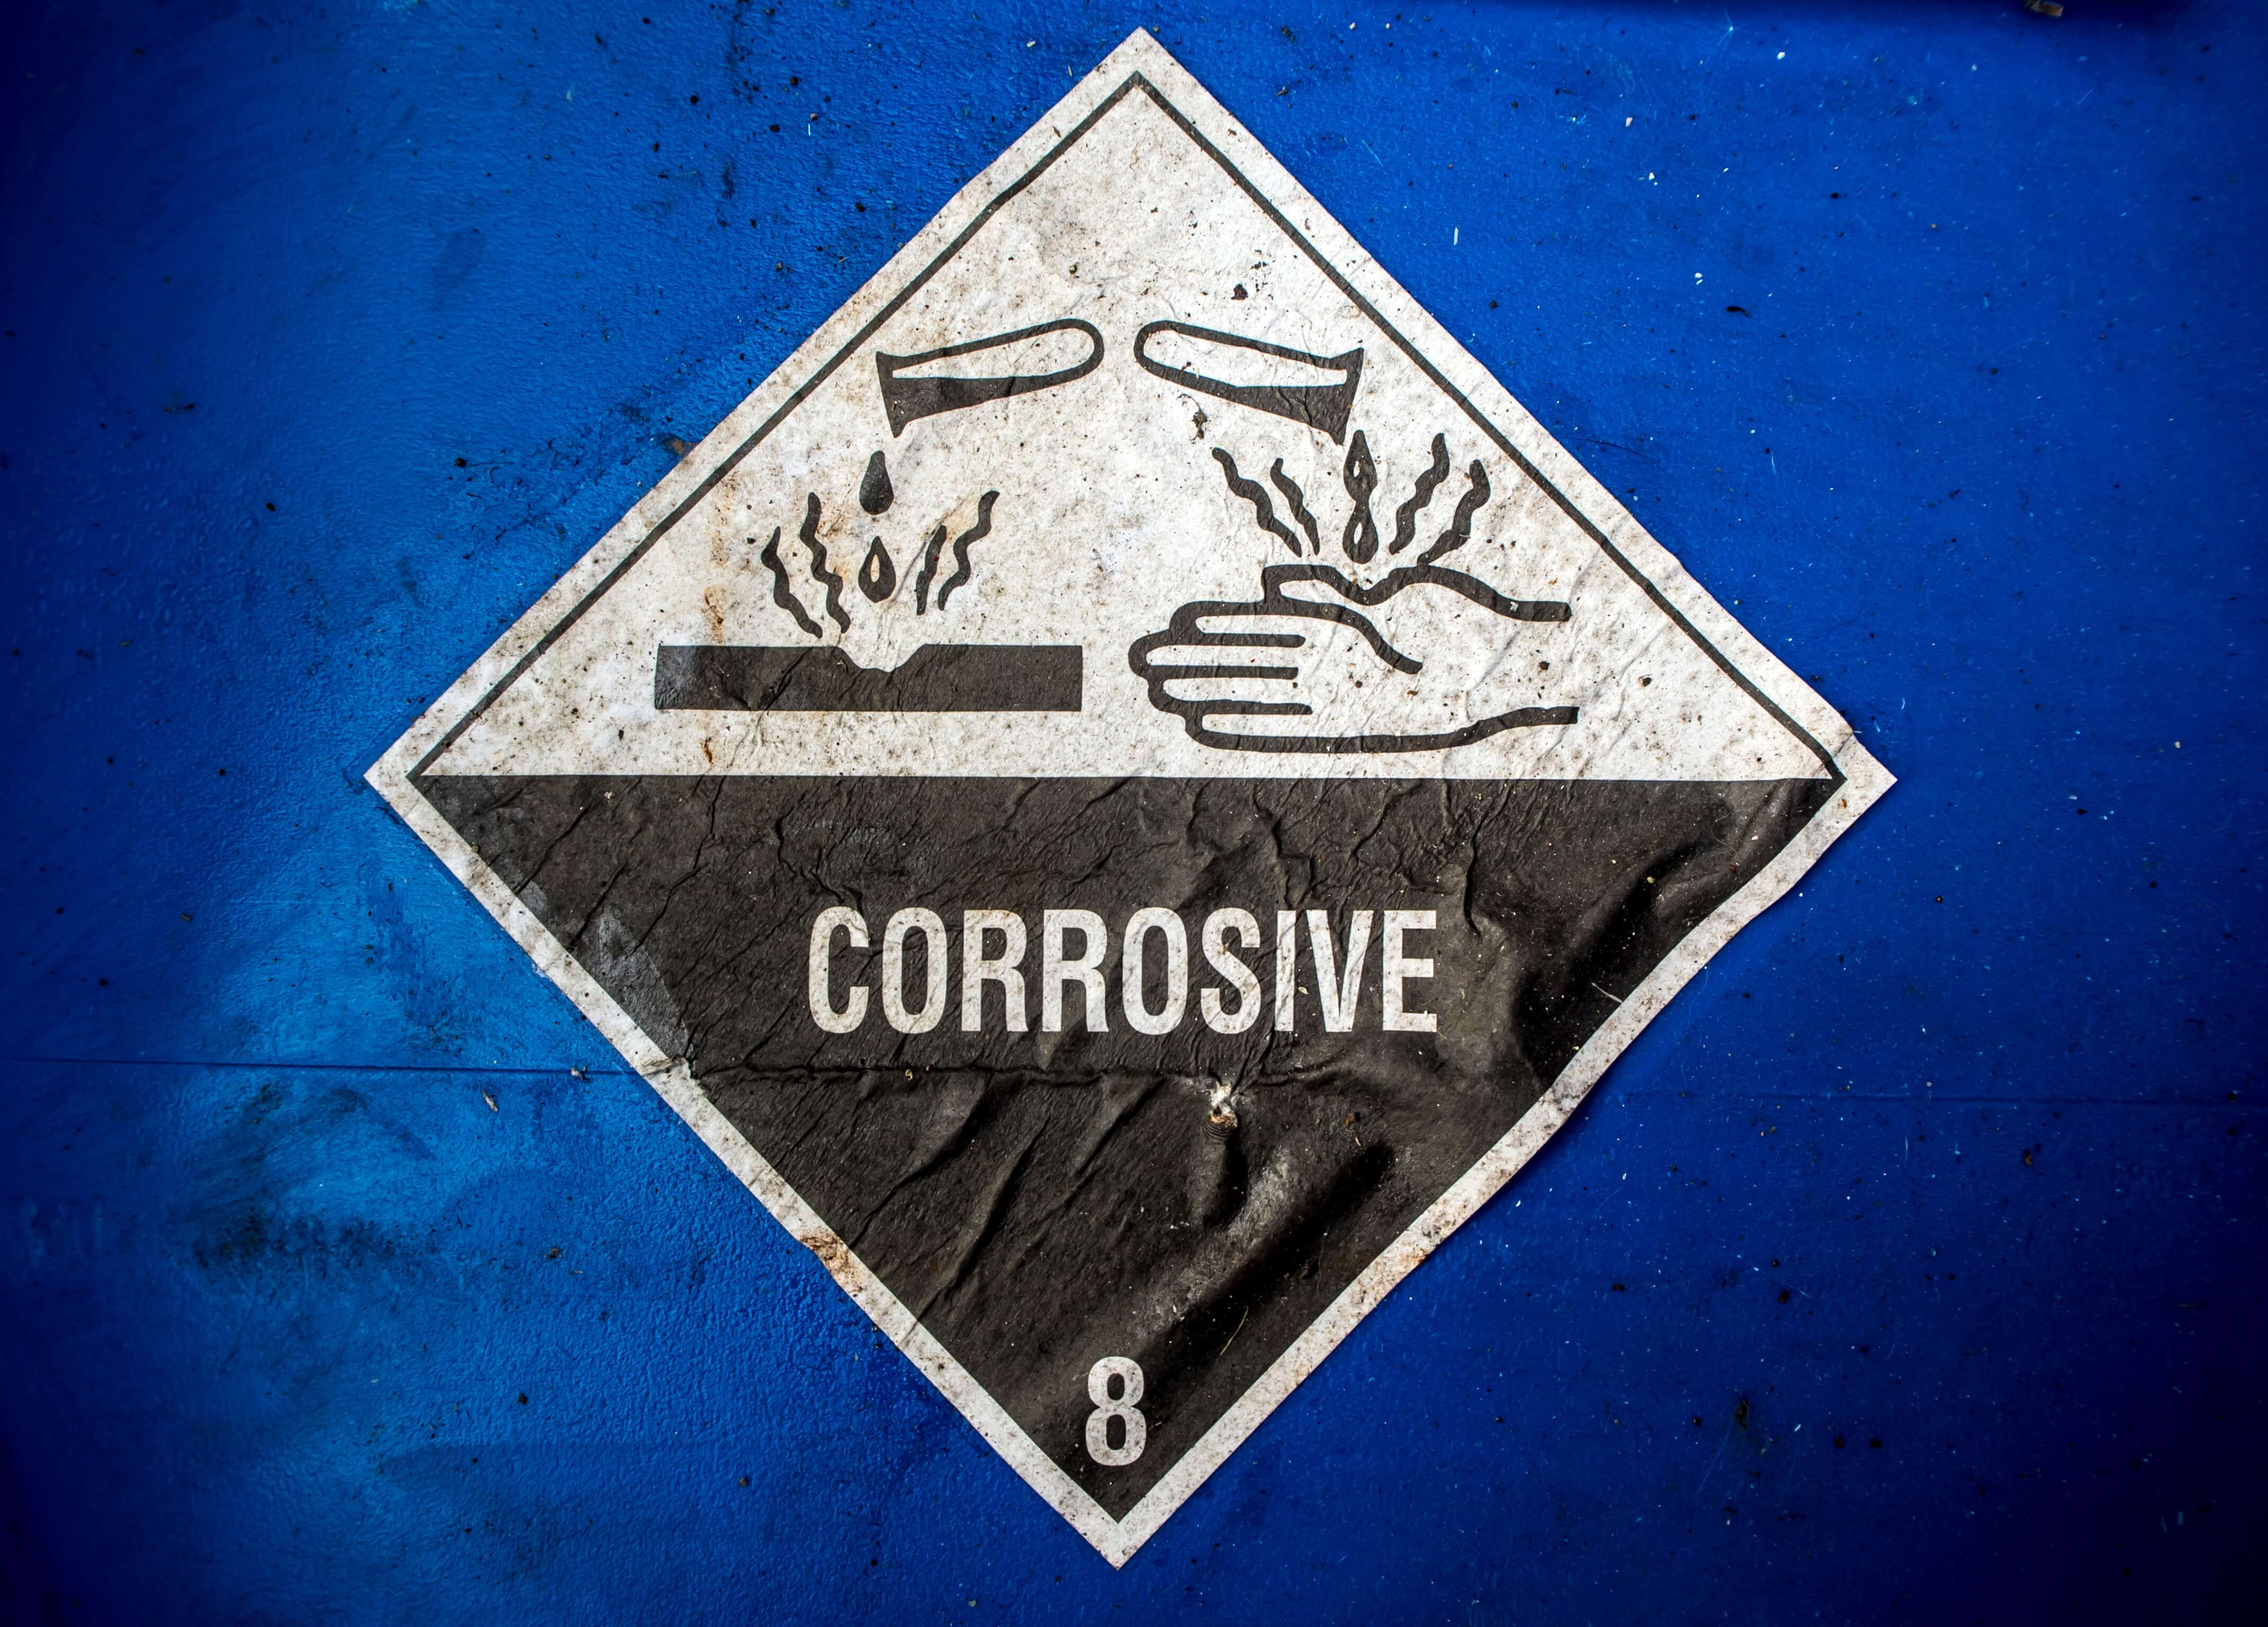 What Are Corrosive Substances